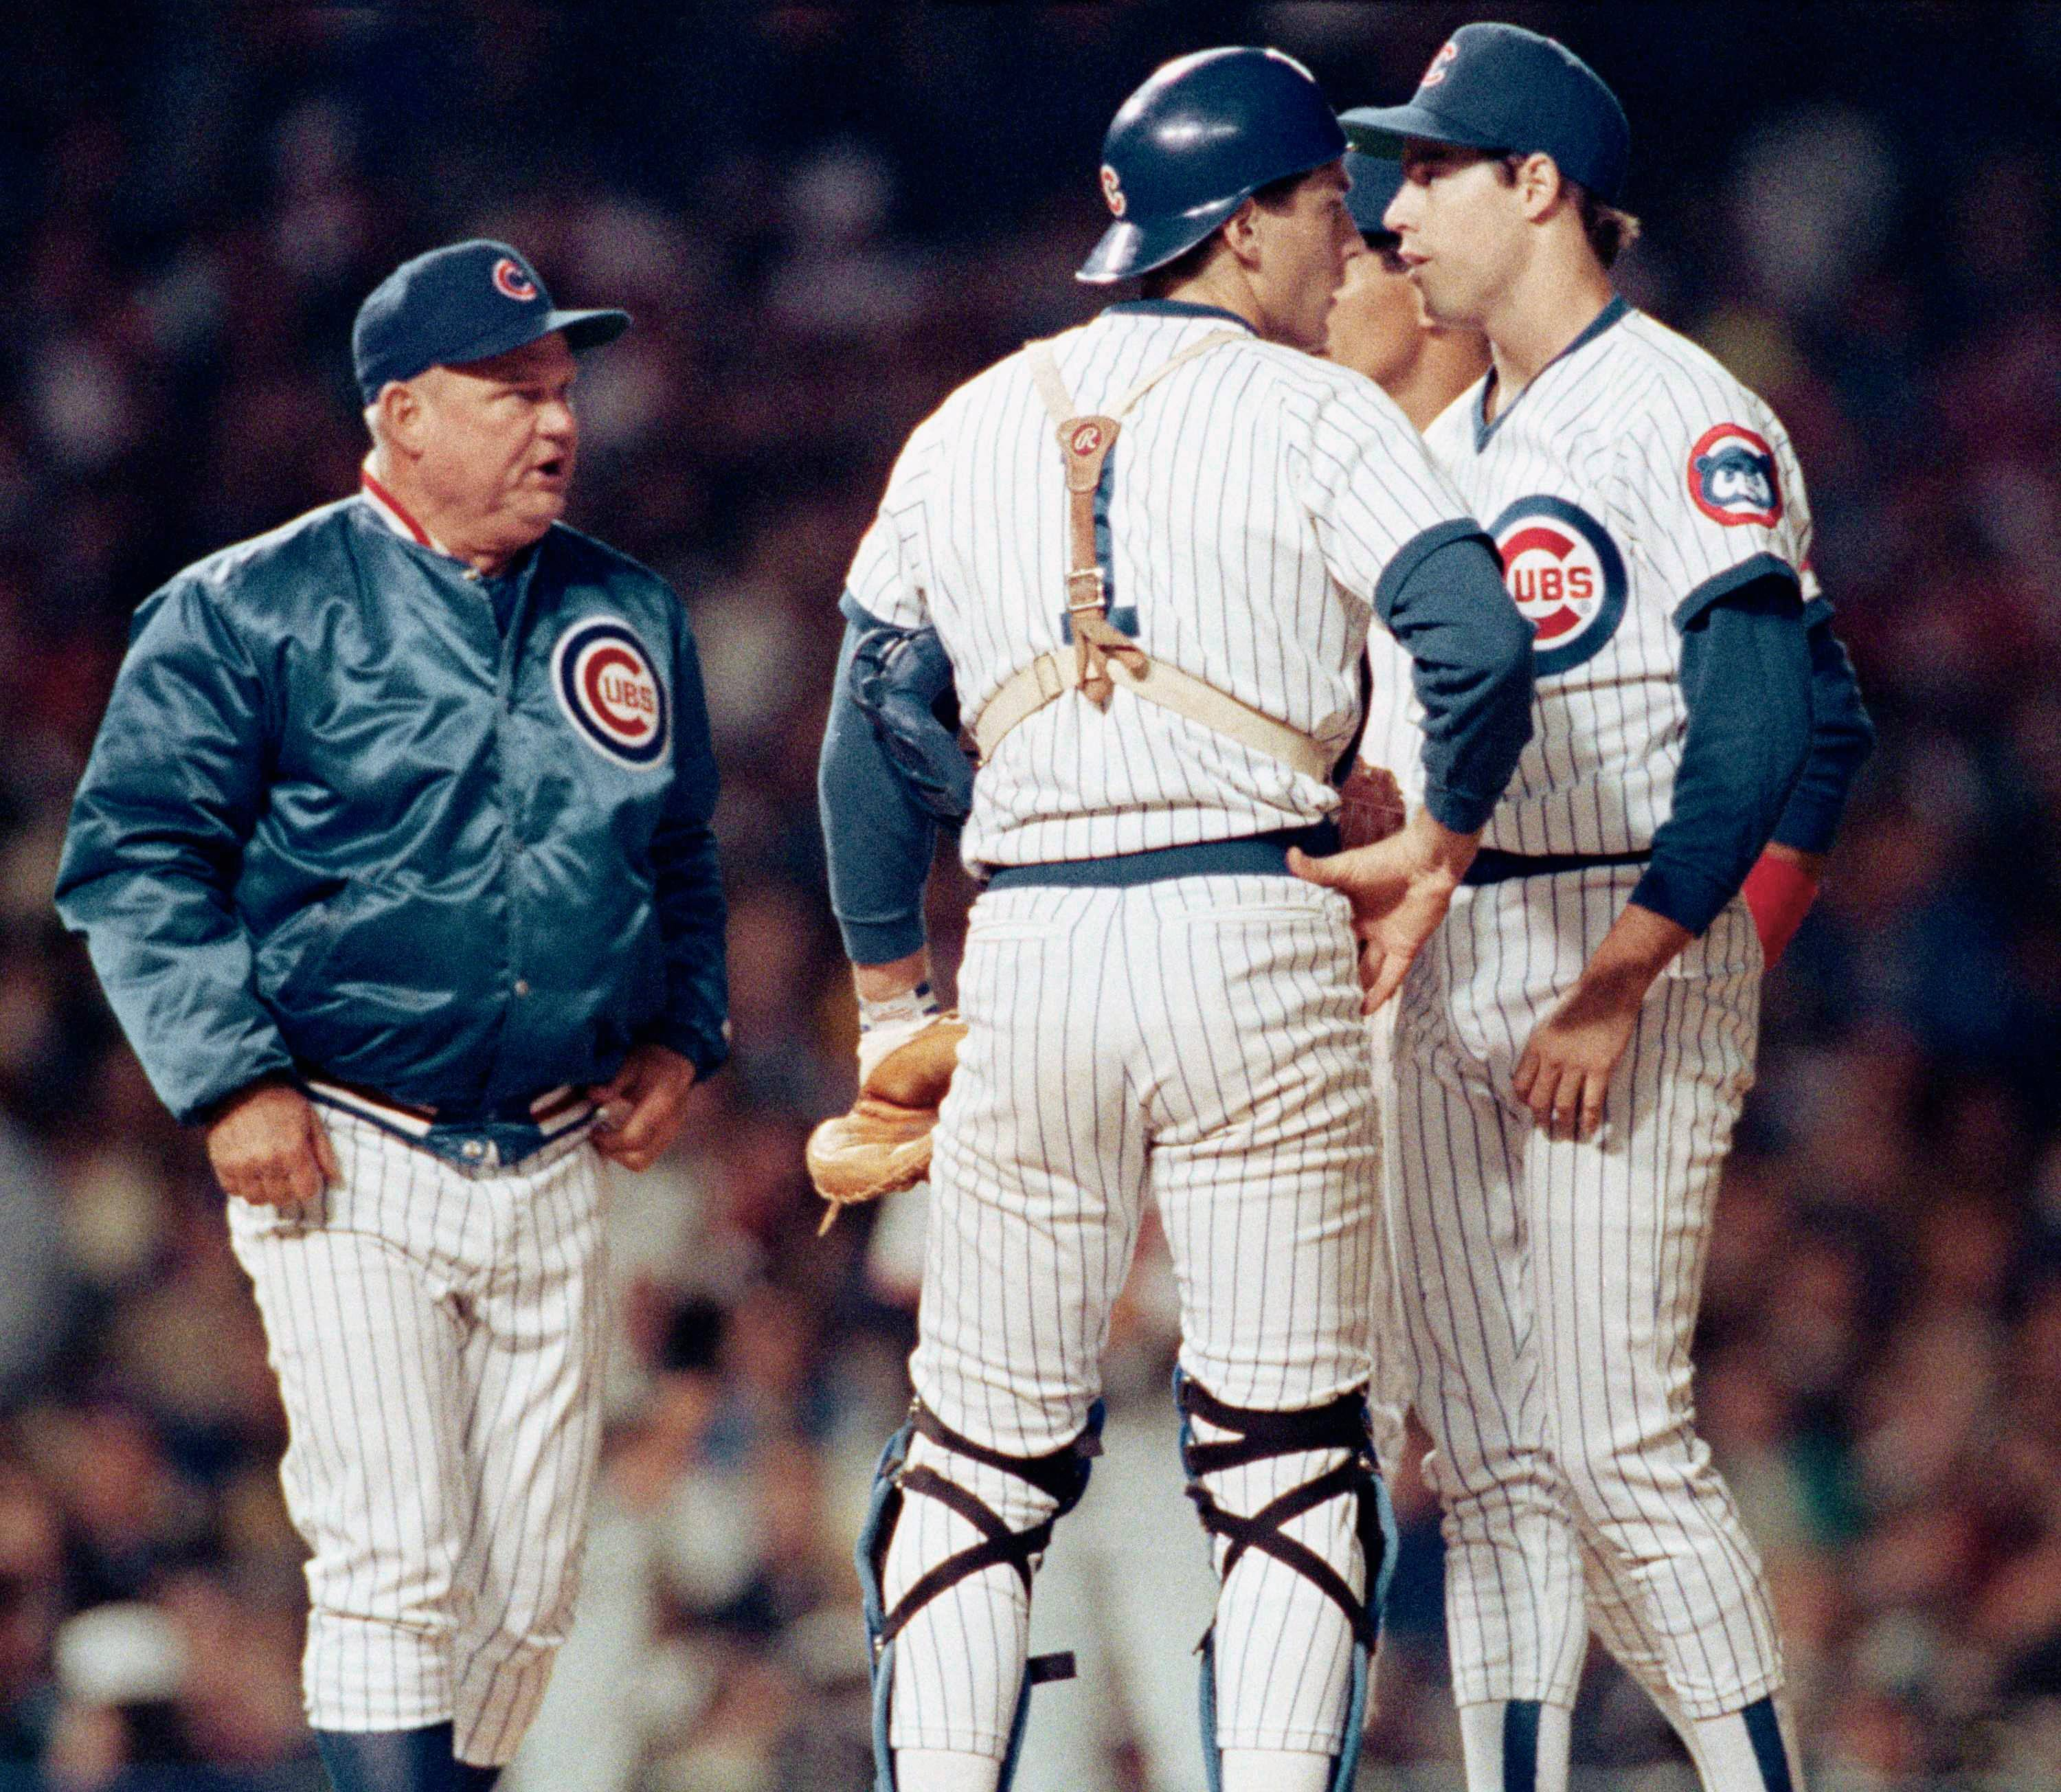 Cubs manager Don Zimmer, left, approaches pitcher Greg Maddux, right, and catcher Rick Wrona (1) with the bases loaded and San Francisco Giants Will Clark at bat during the fourth inning, Wednesday, Oct. 5, 1989. Clark hit a grand slam homer, leading the Giants to an 11-3 win over the Cubs to take the first game of the NL championship series.